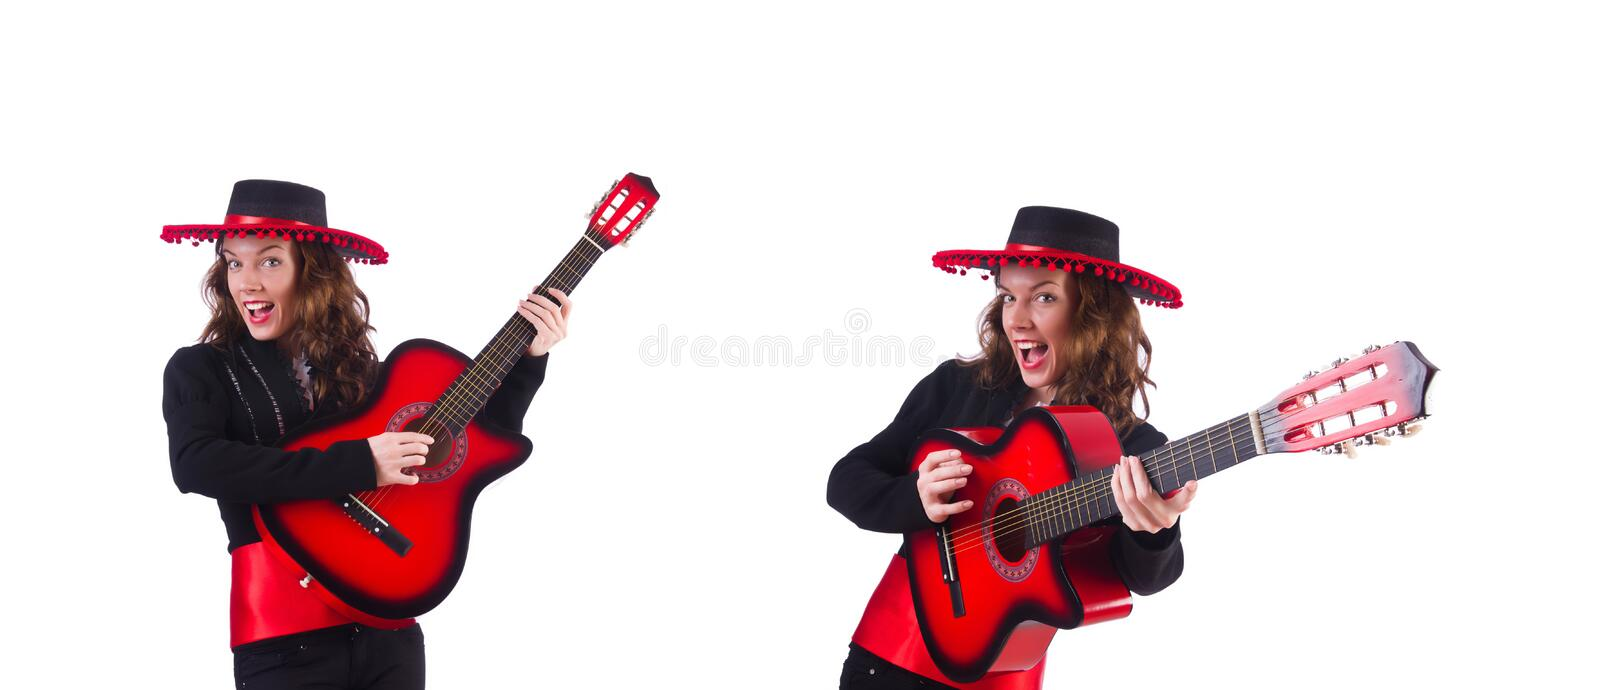 Guitar player isolated on the white royalty free stock image